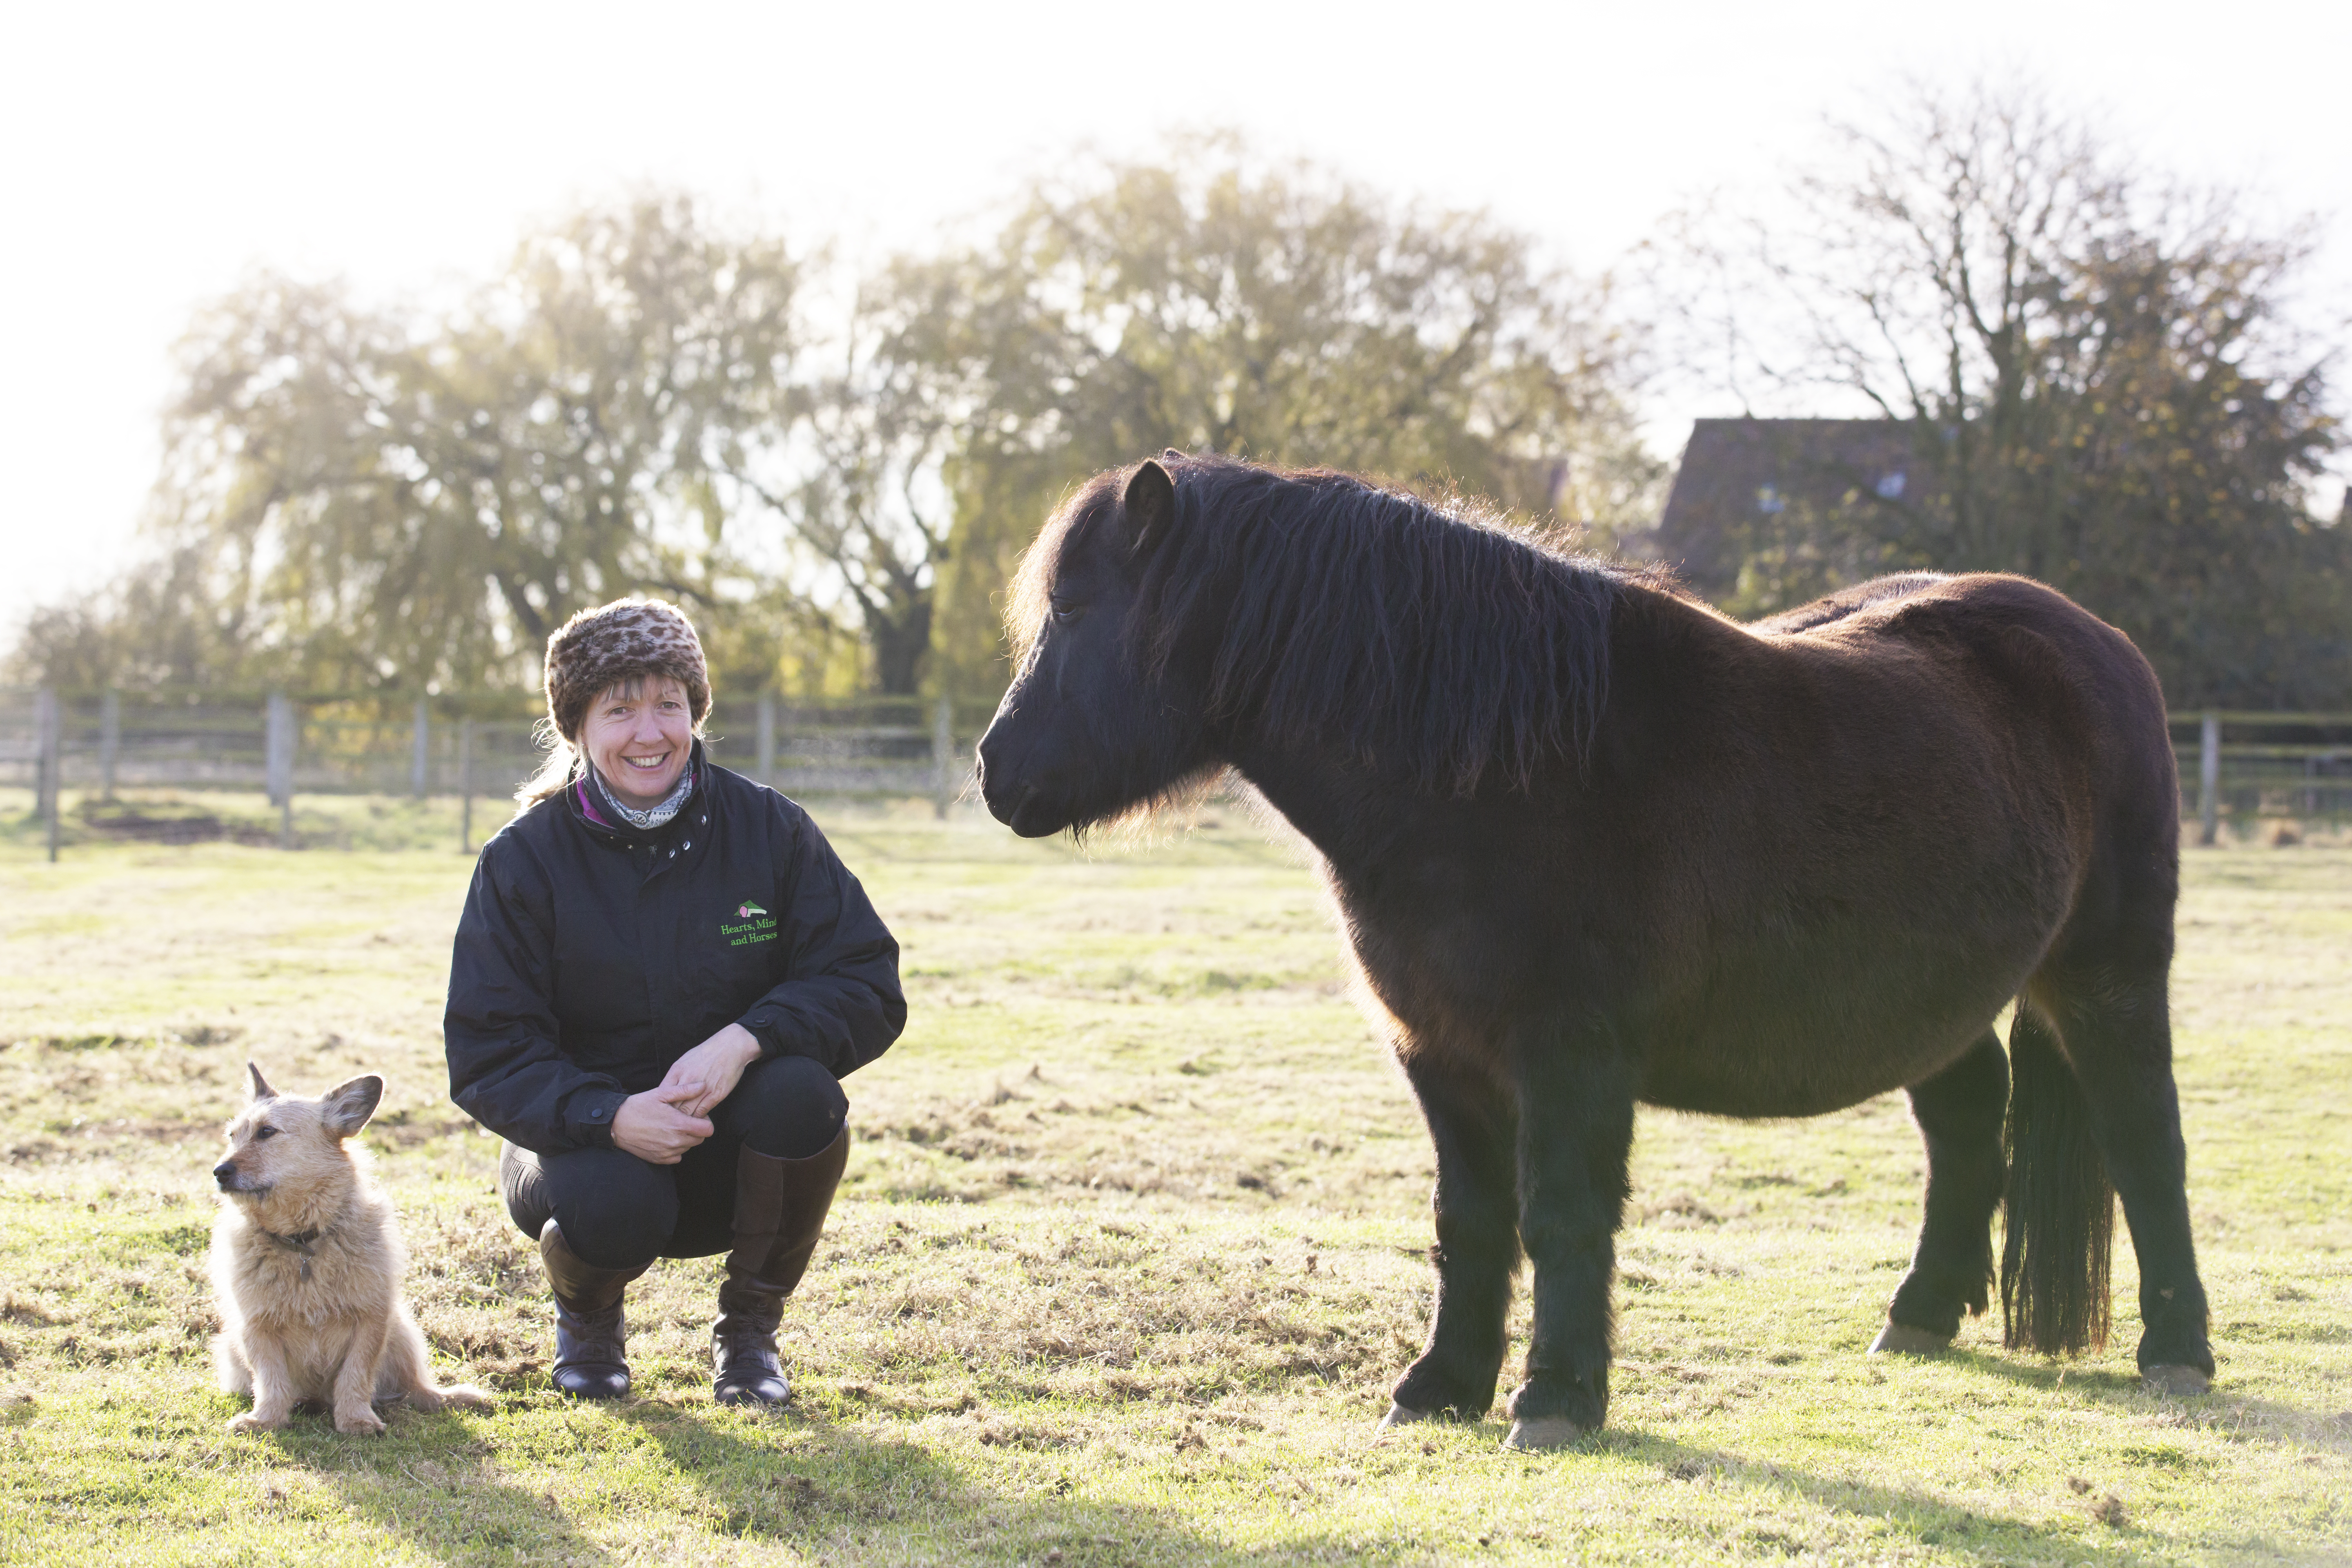 counsellor michelle with horse and dog